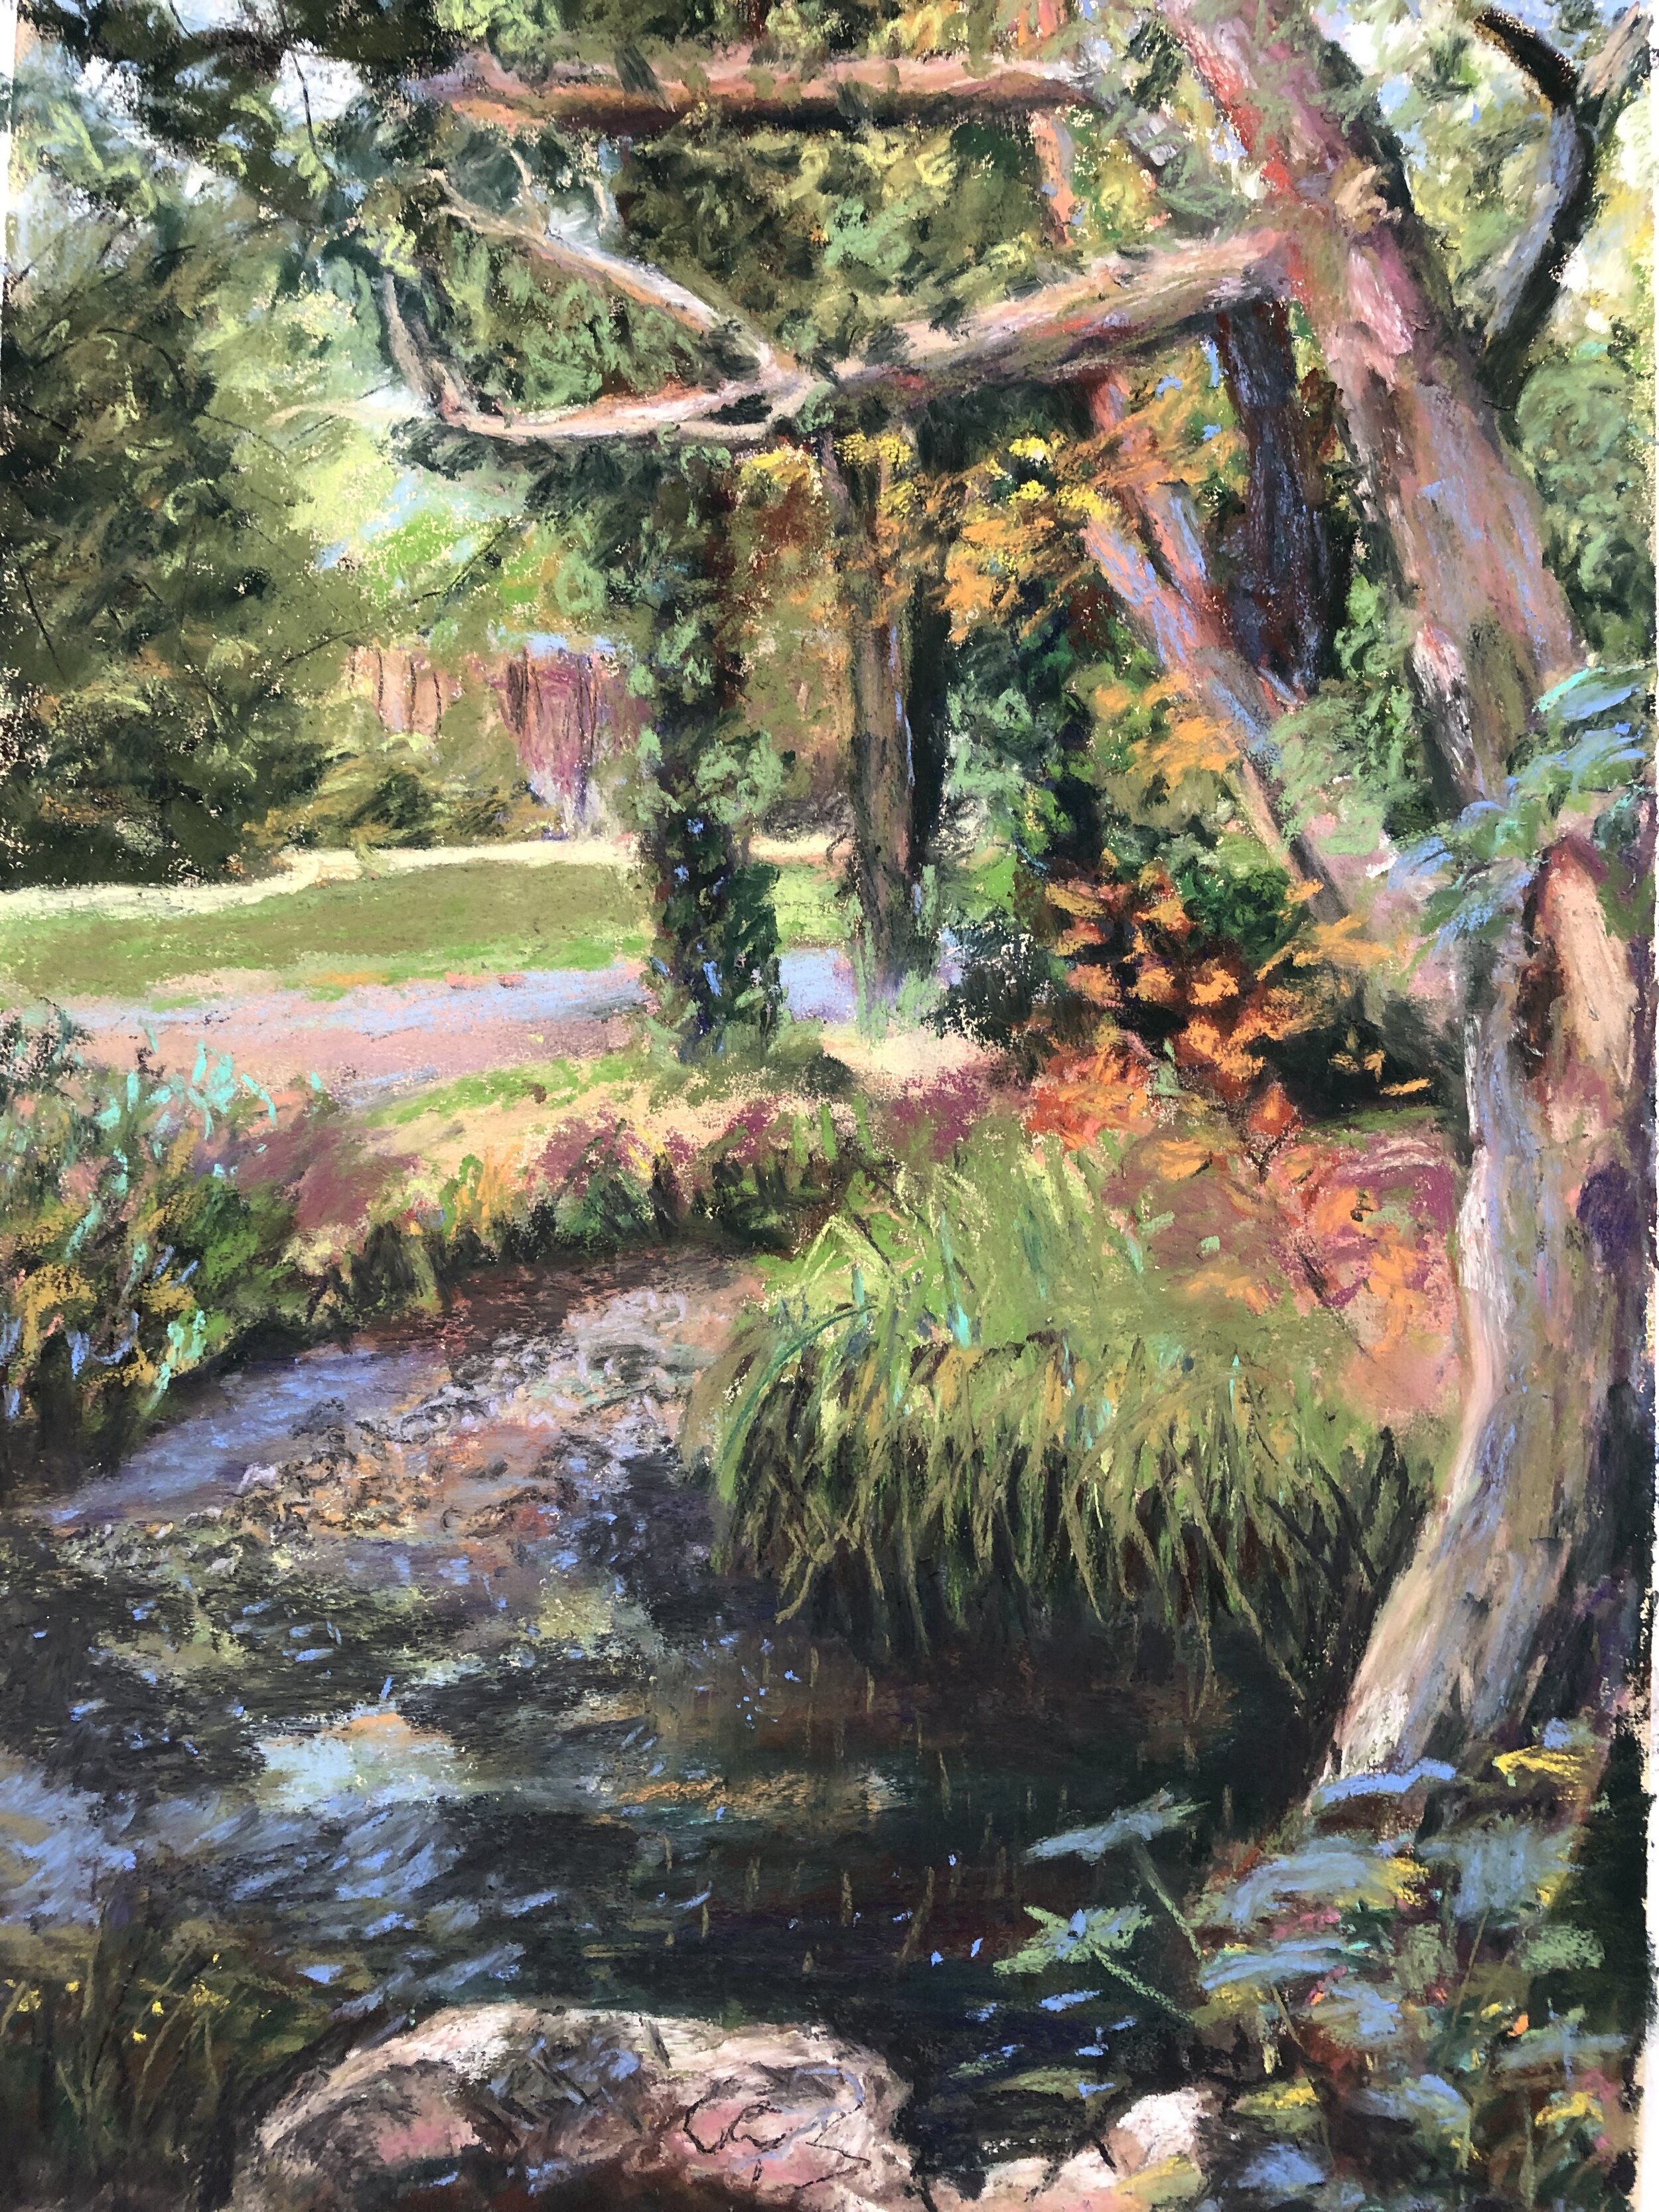 Dollis Valley Brook - NEWMedium/Materials used: Soft Pastels on Canson Mi-Teintes paper.Measurements (framed): 48cm x 36cmMeasurements (Unframed): 42cm x 30cm